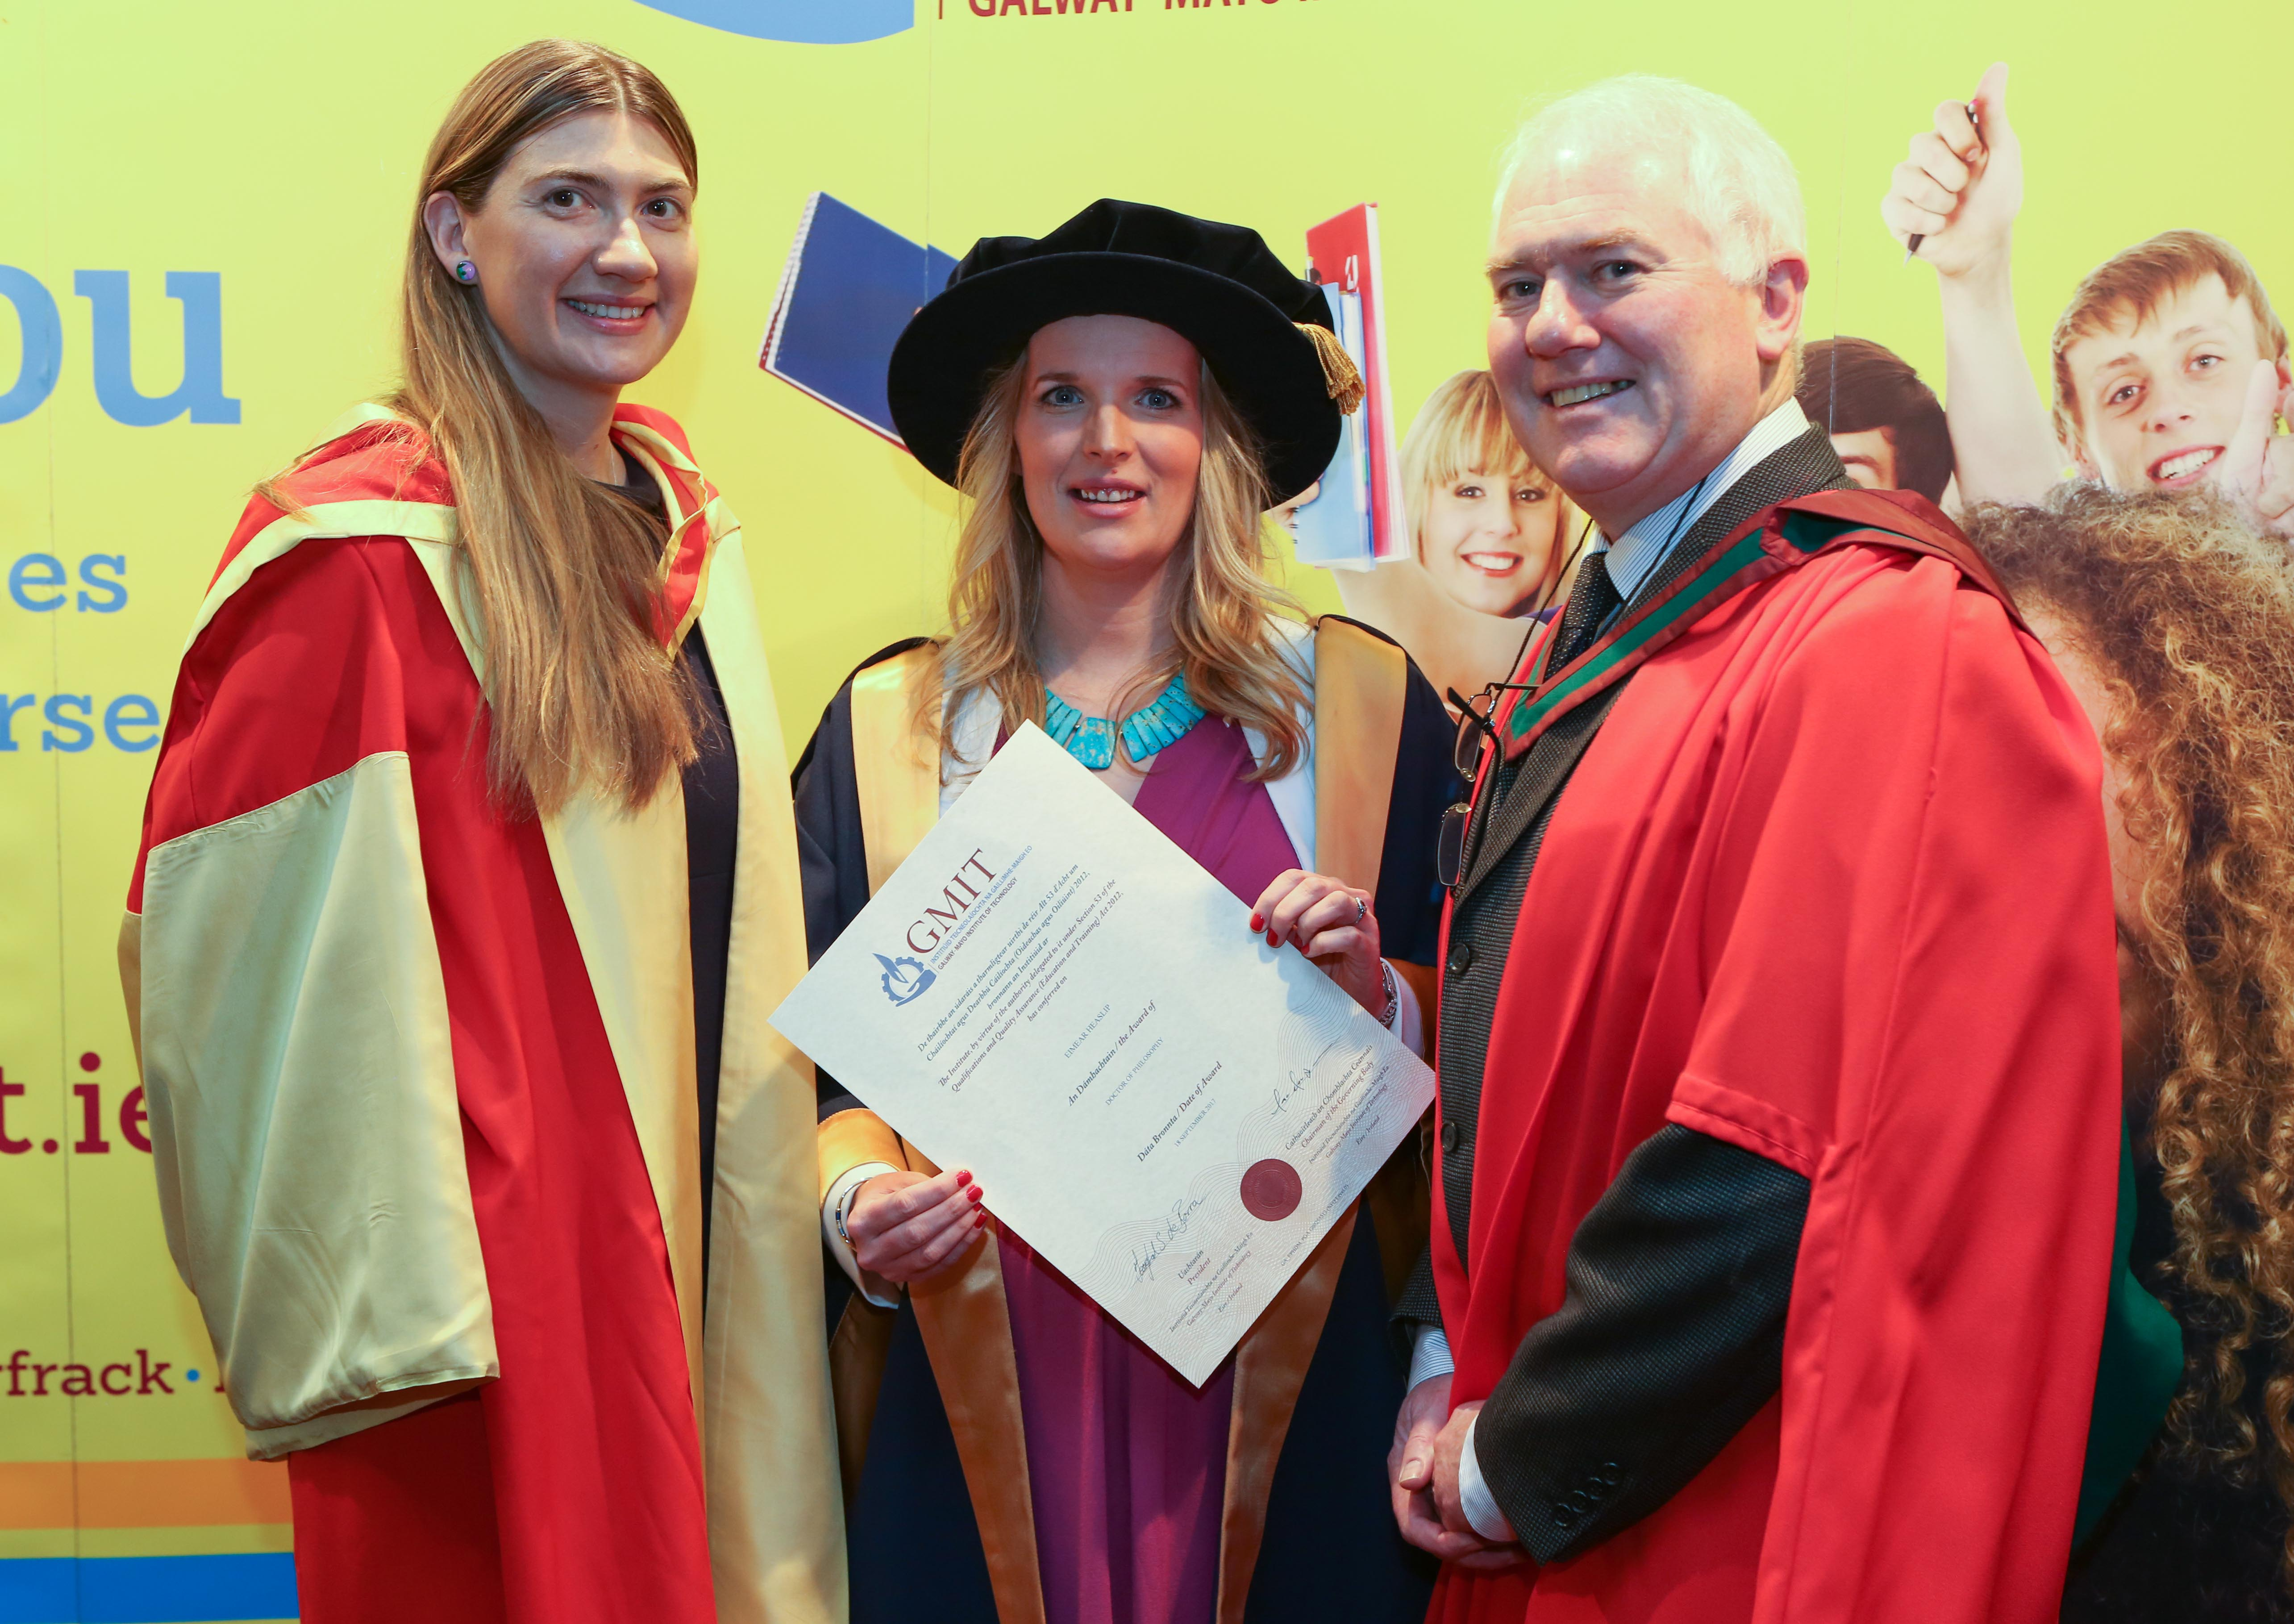 Dr Eimear Heaslip receiving her PhD award from GMIT in November 2017-image